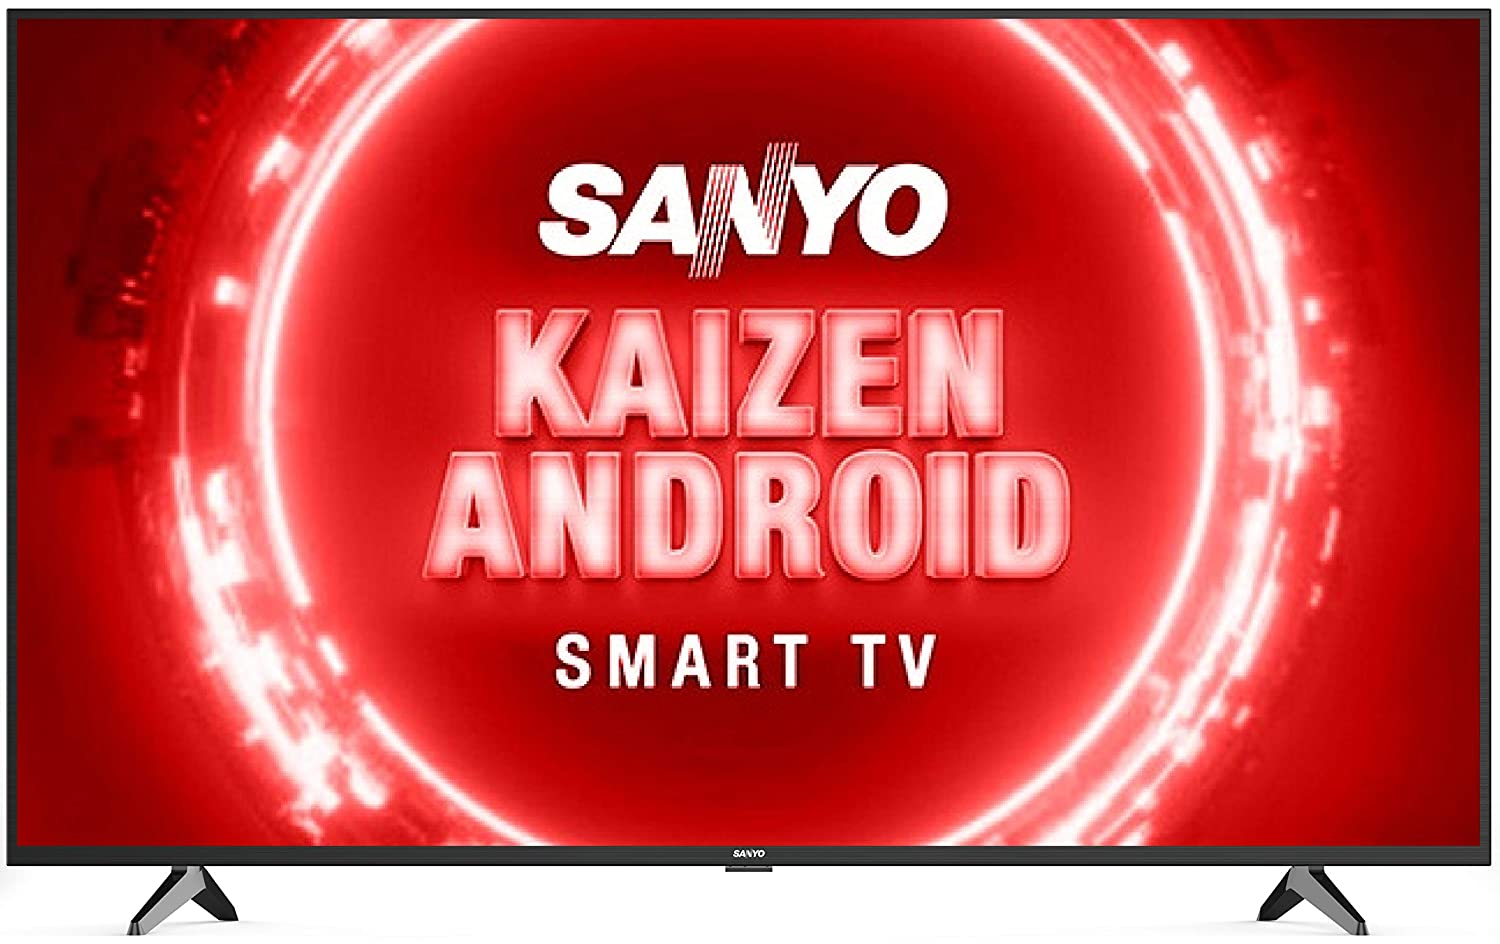 Sanyo 126 cm (50 inches) Kaizen Series 4K Ultra HD Certified